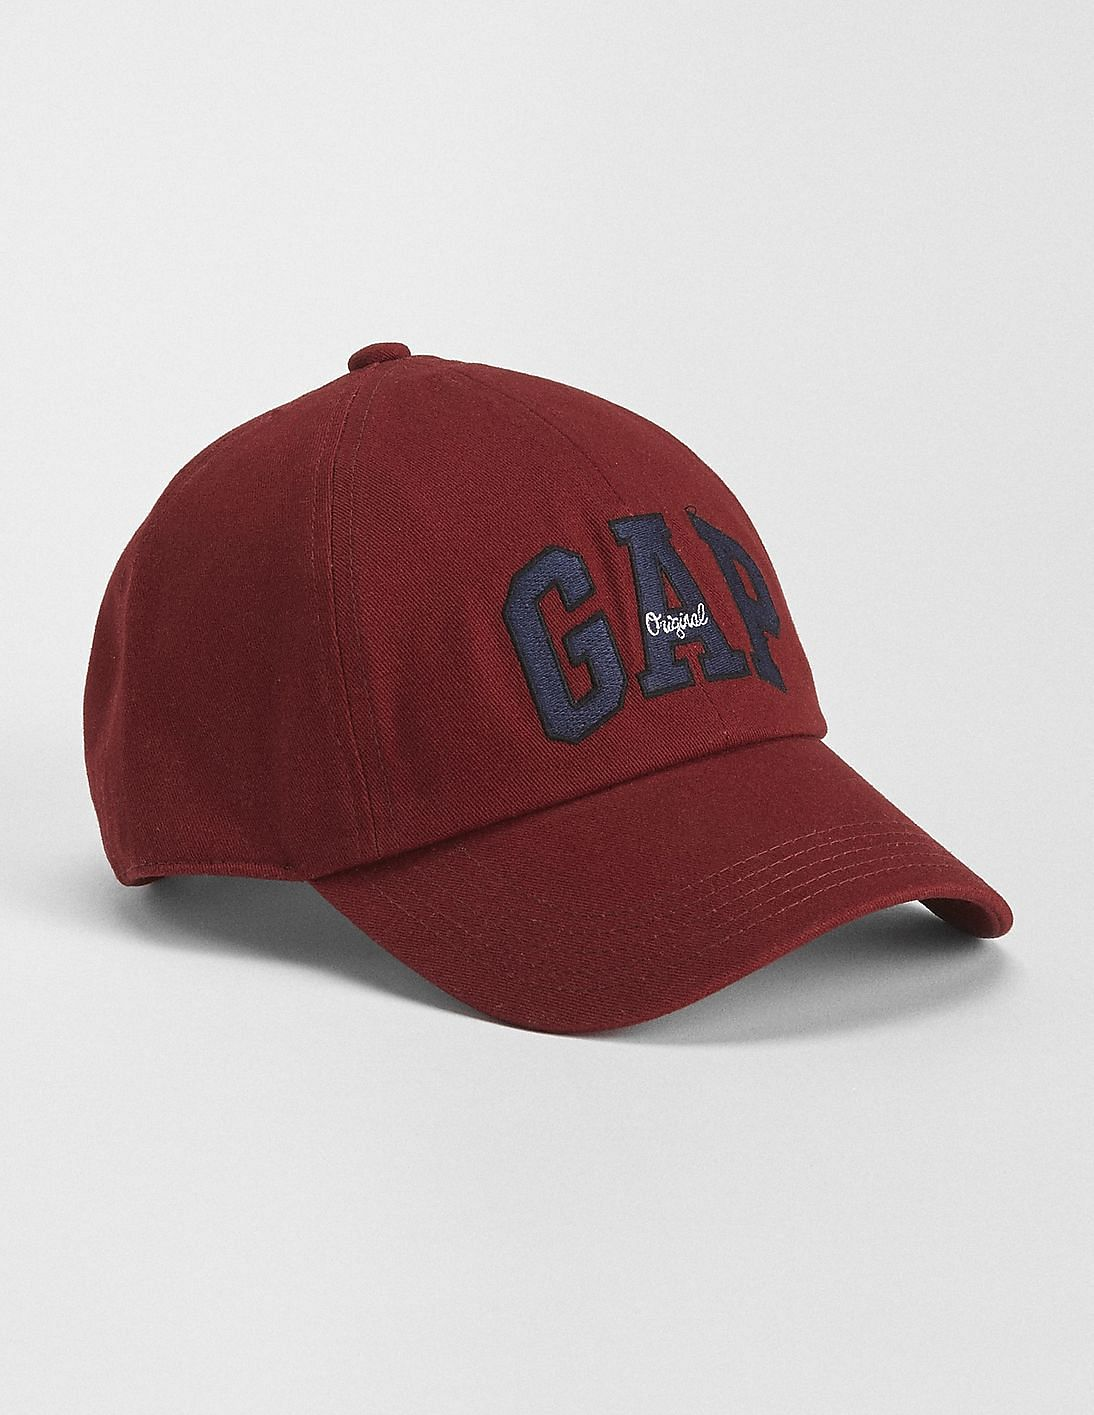 ccf9dccb7 Buy Men 33838413100 Burgundy Mens Cap online at NNNOW.com